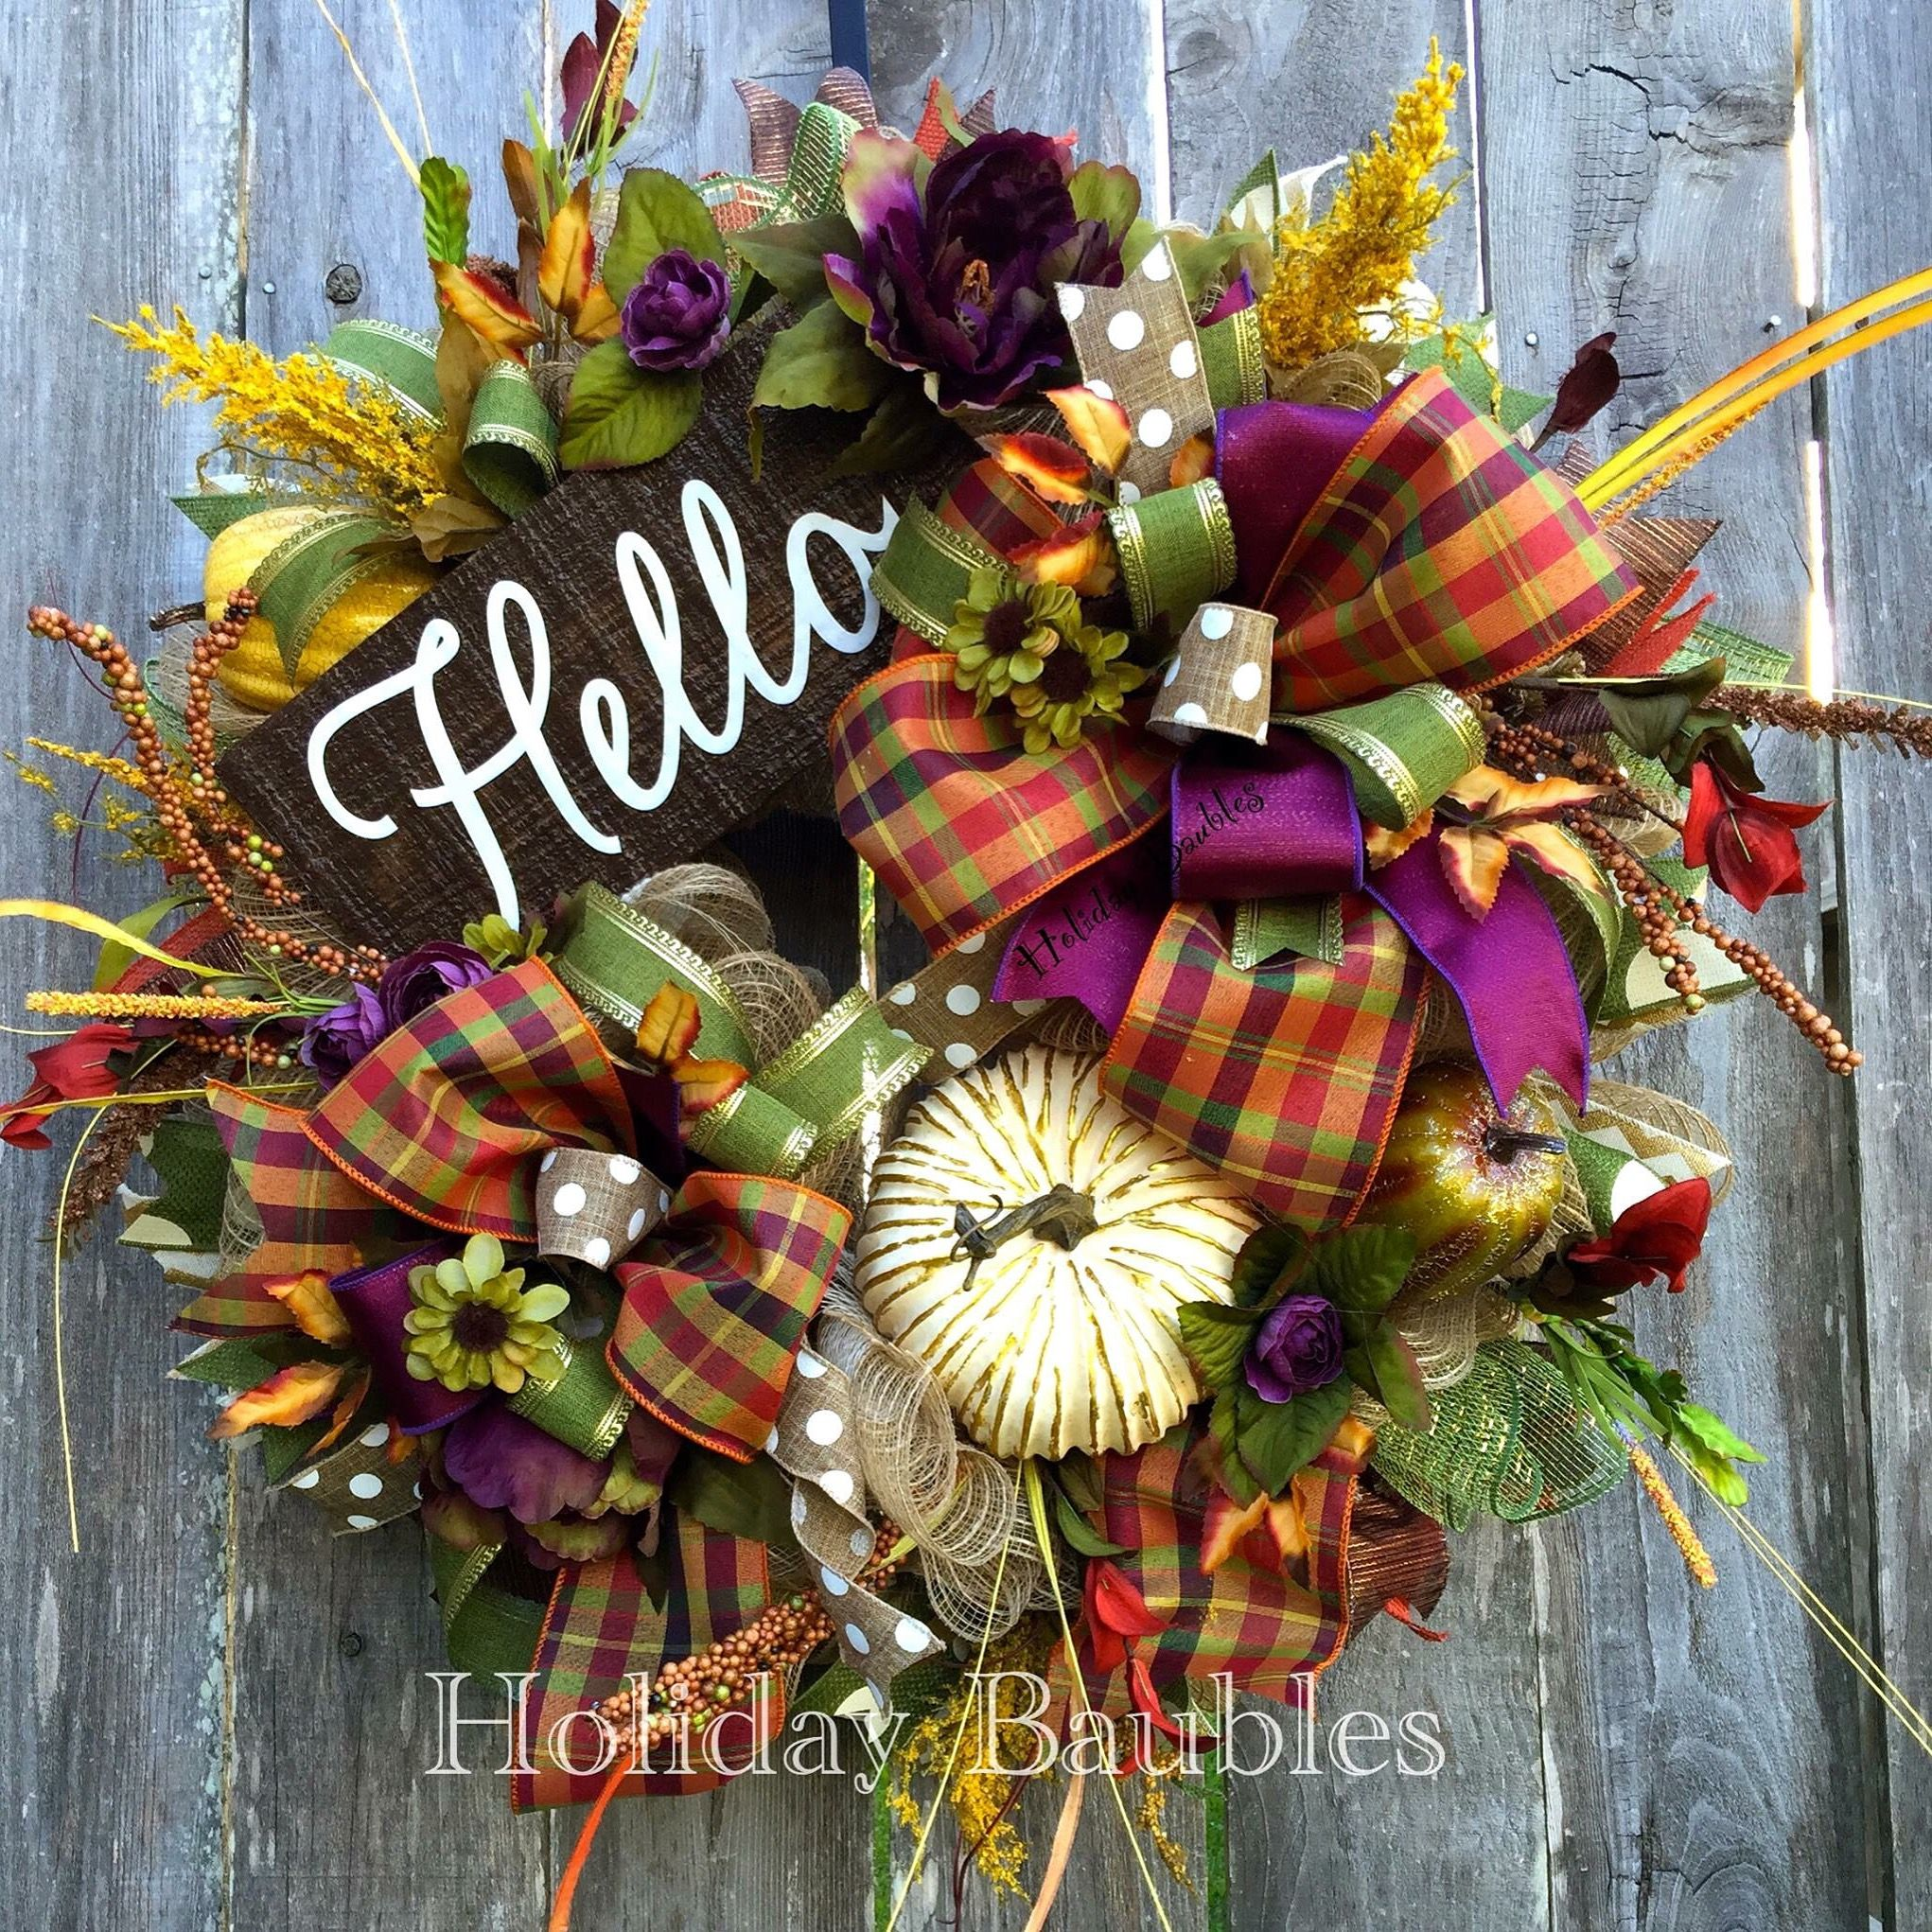 Decorazioni Per L Autunno hello fall by holiday baubles (con immagini) | ghirlande